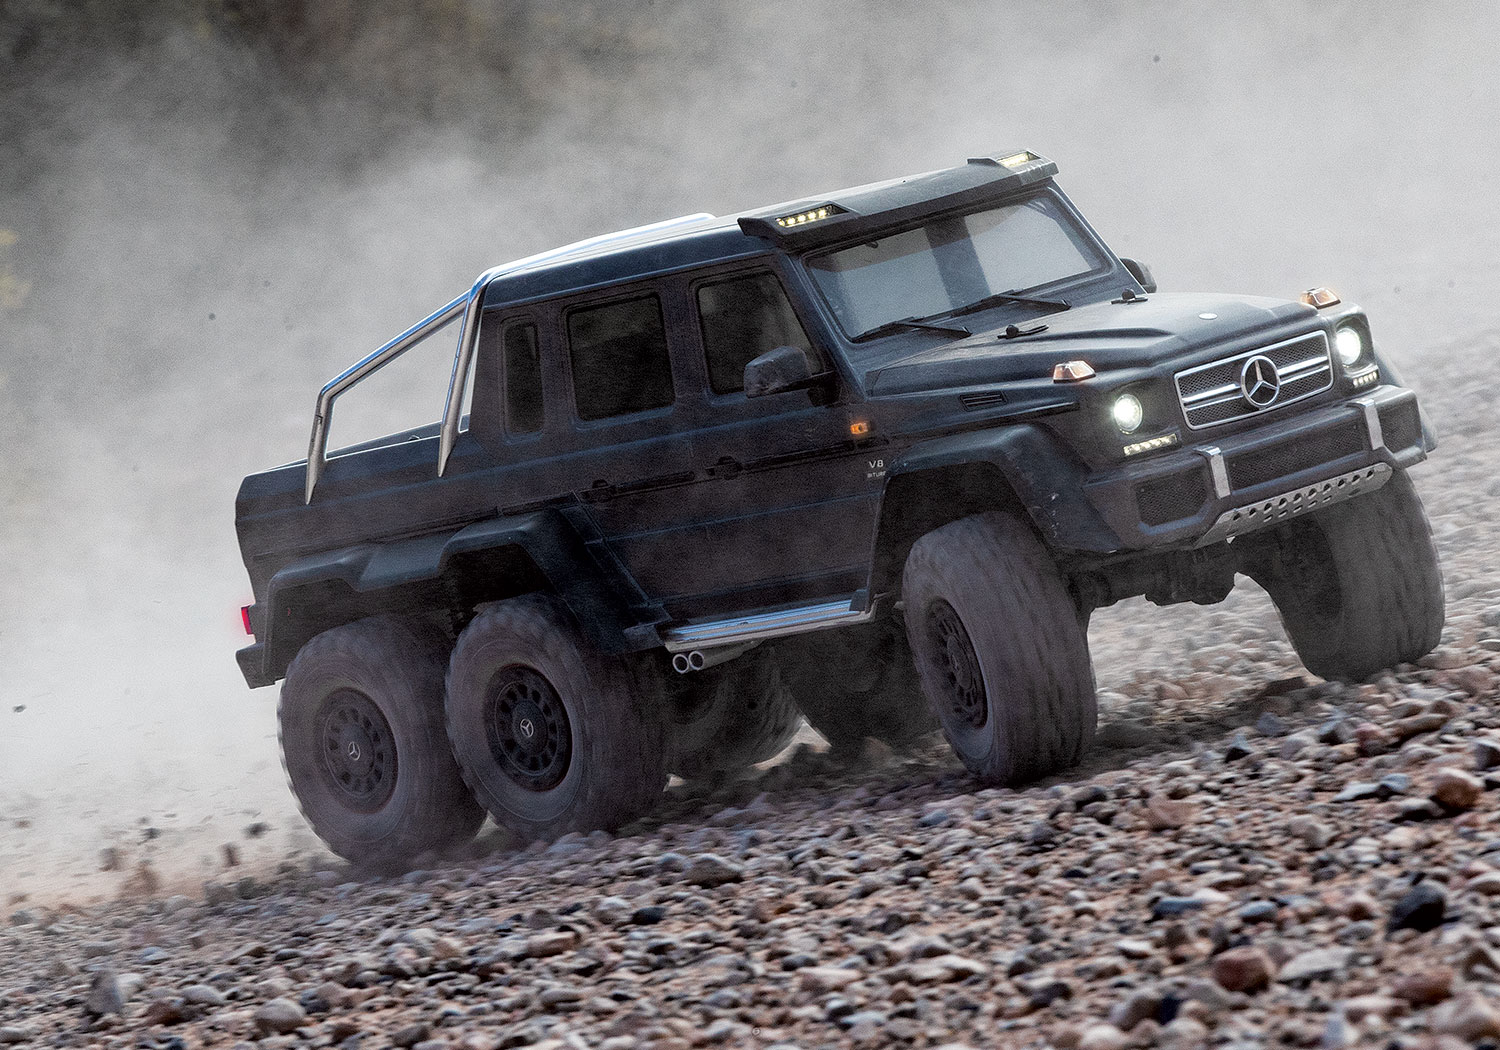 TRX-6 with Mercedes-Benz G 63 AMG 6x6